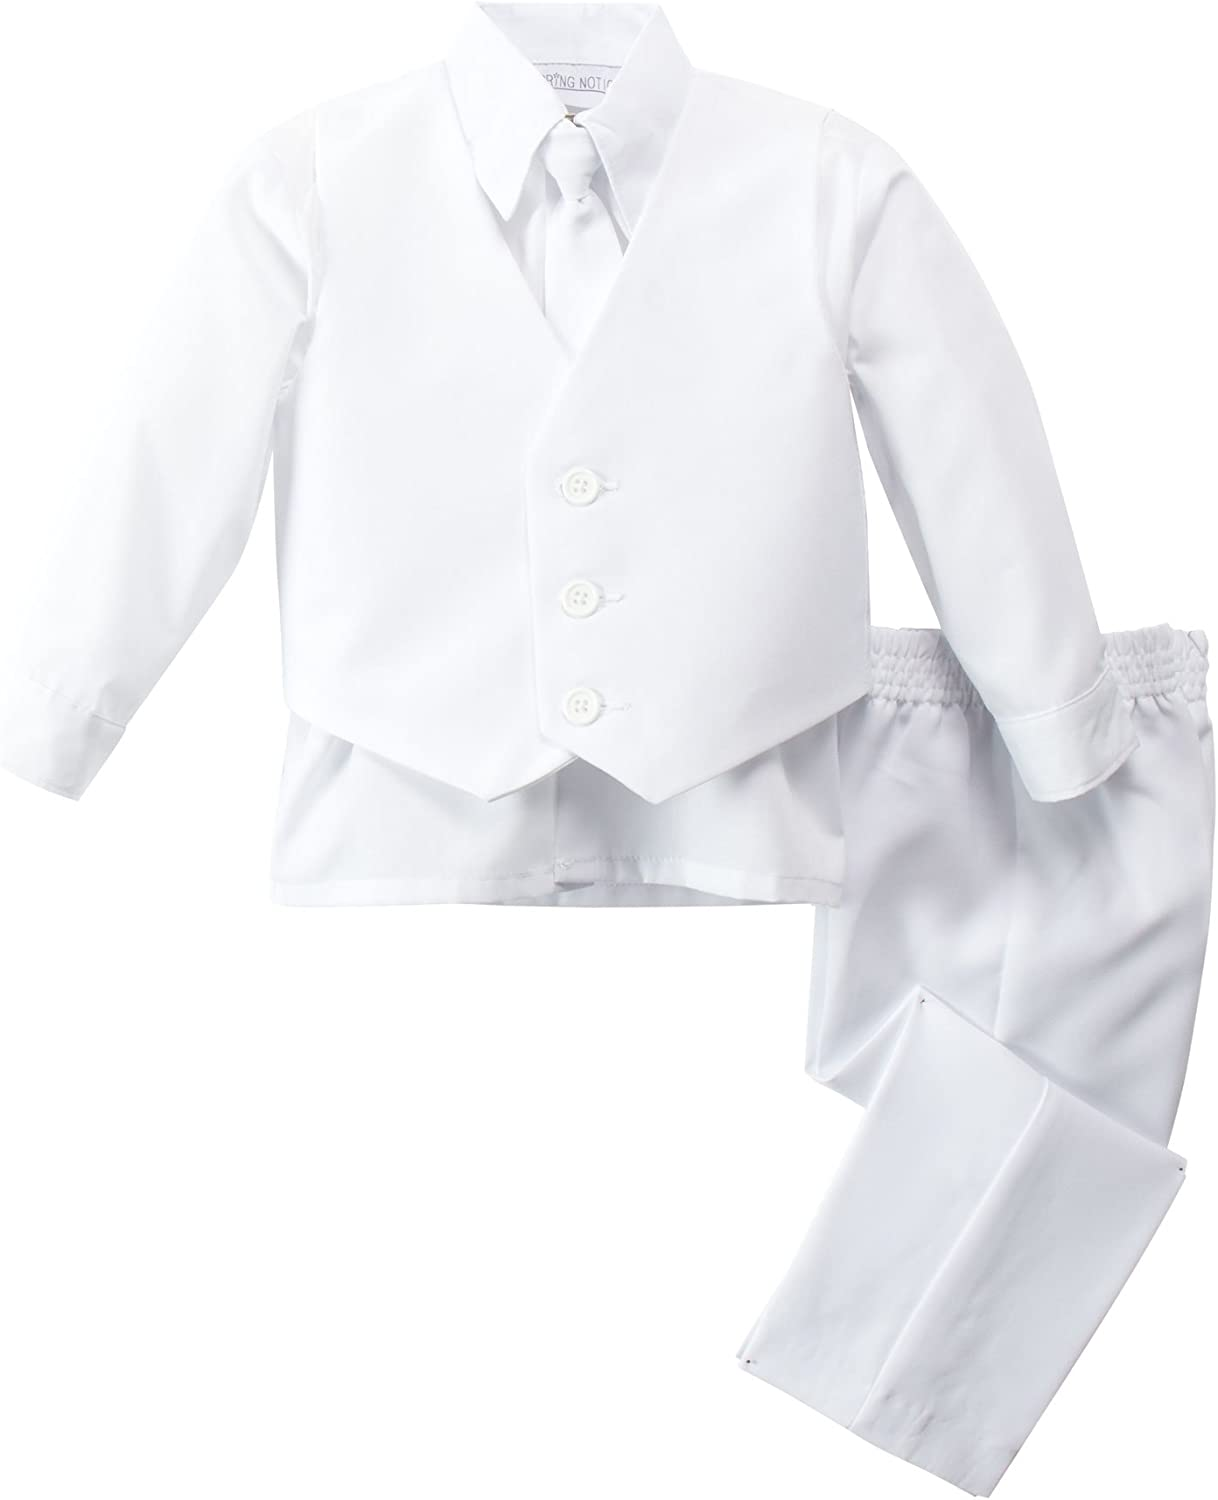 Spring Notion Baby Boys Modern Fit White Suit Set